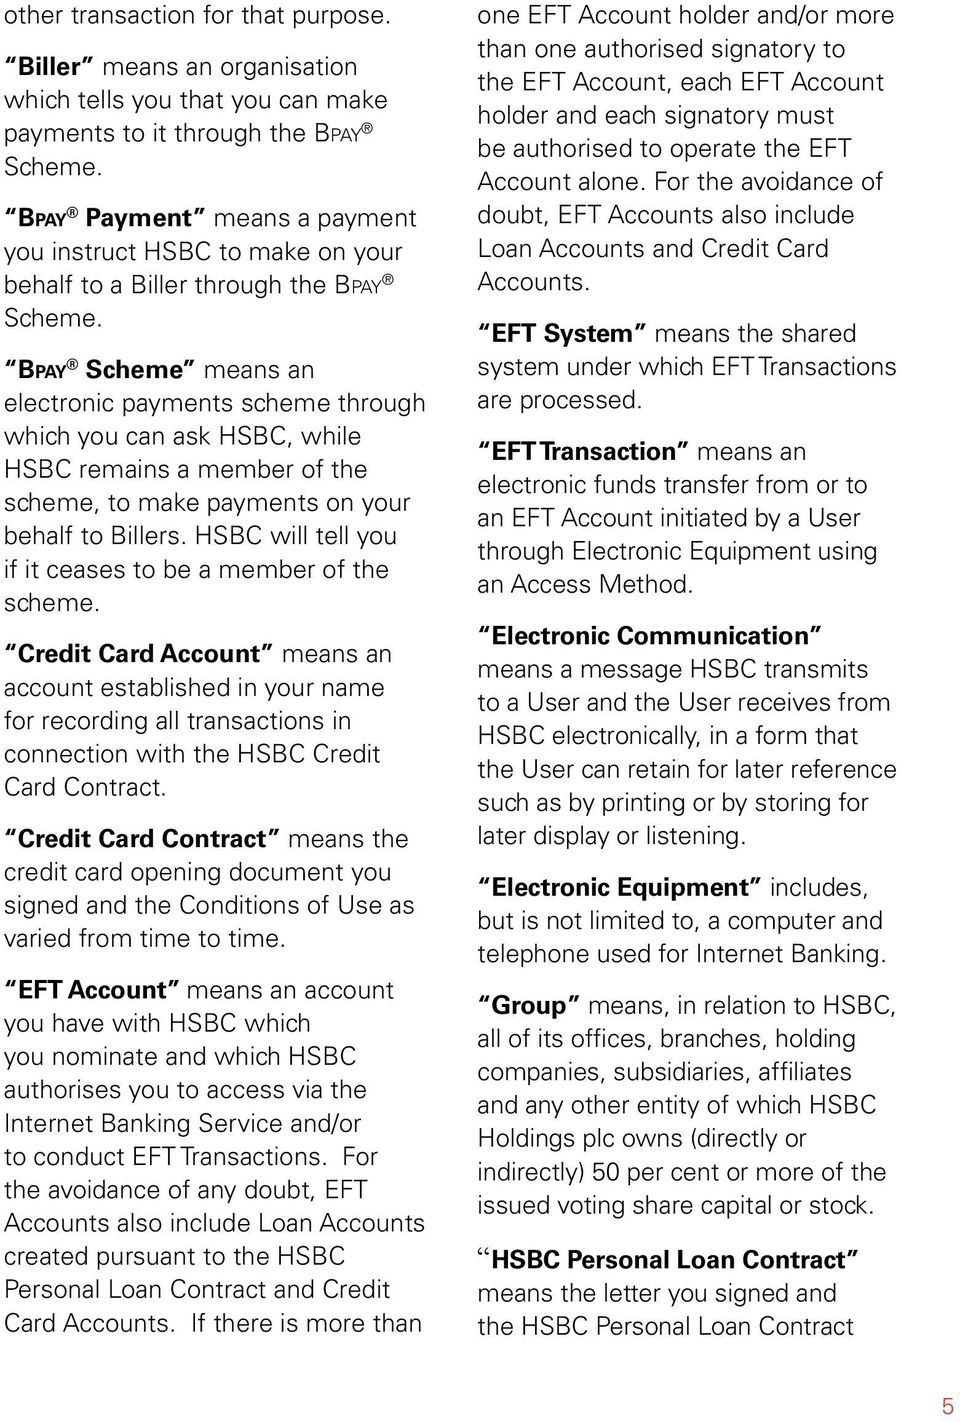 Bpay Scheme means an electronic payments scheme throgh which yo can ask HSBC, while HSBC remains a member of the scheme, to make payments on yor behalf to Billers.